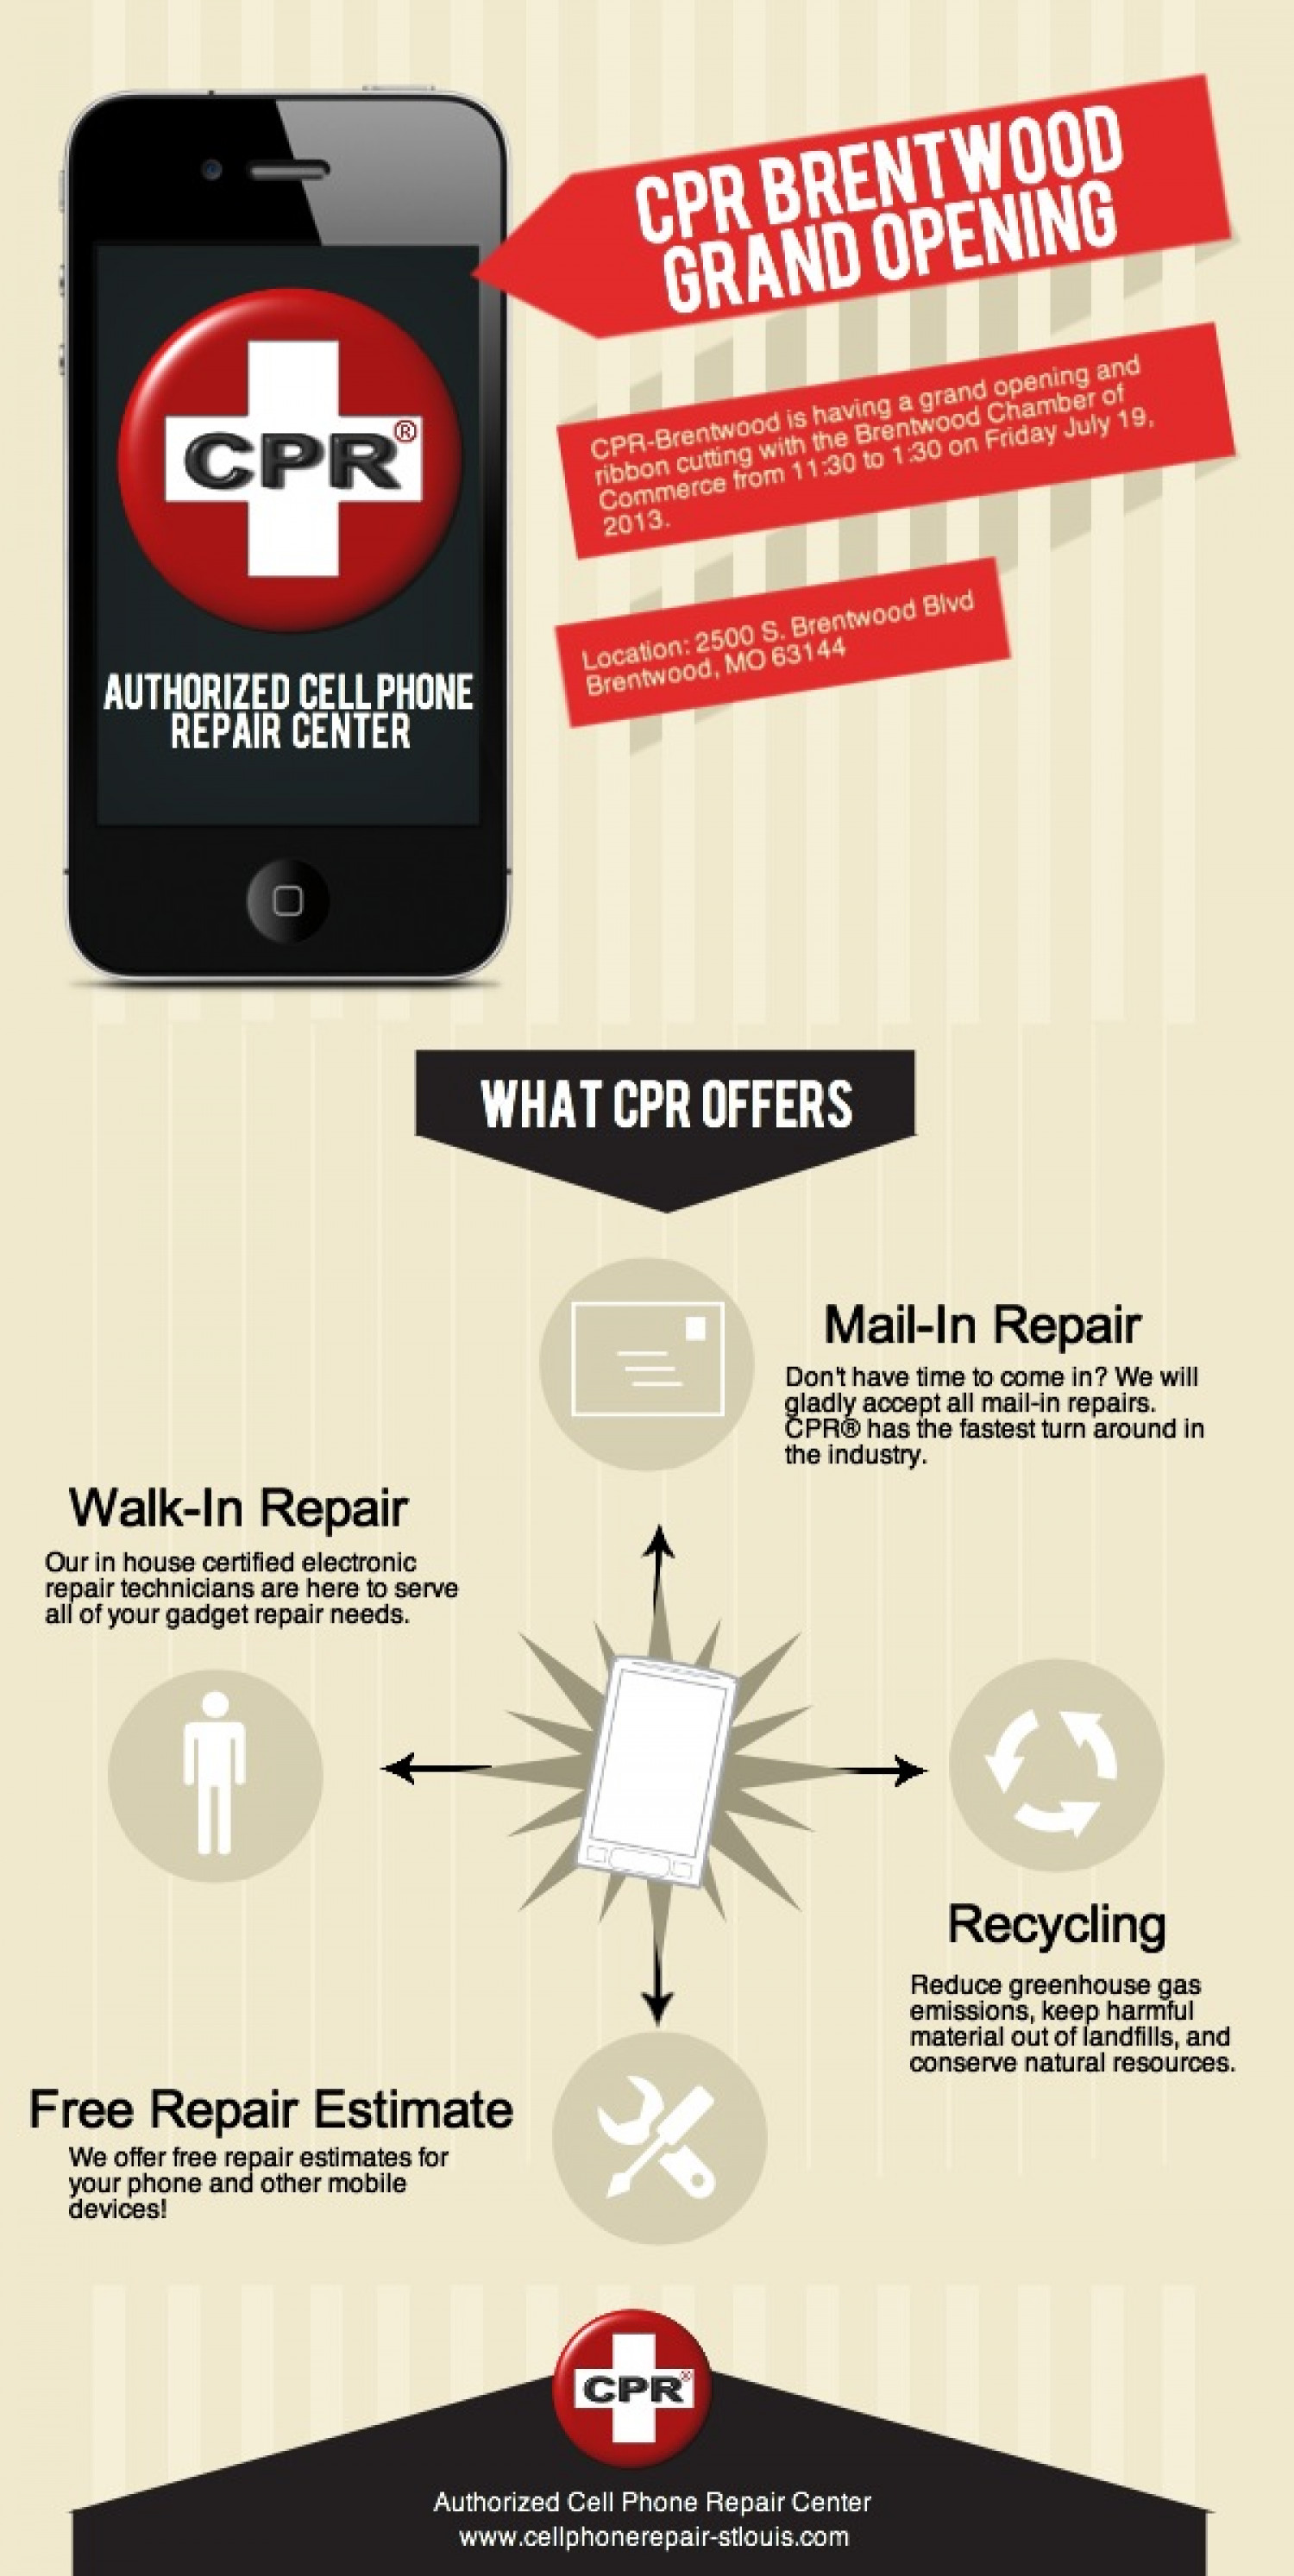 Cellphone Repairs Infographic